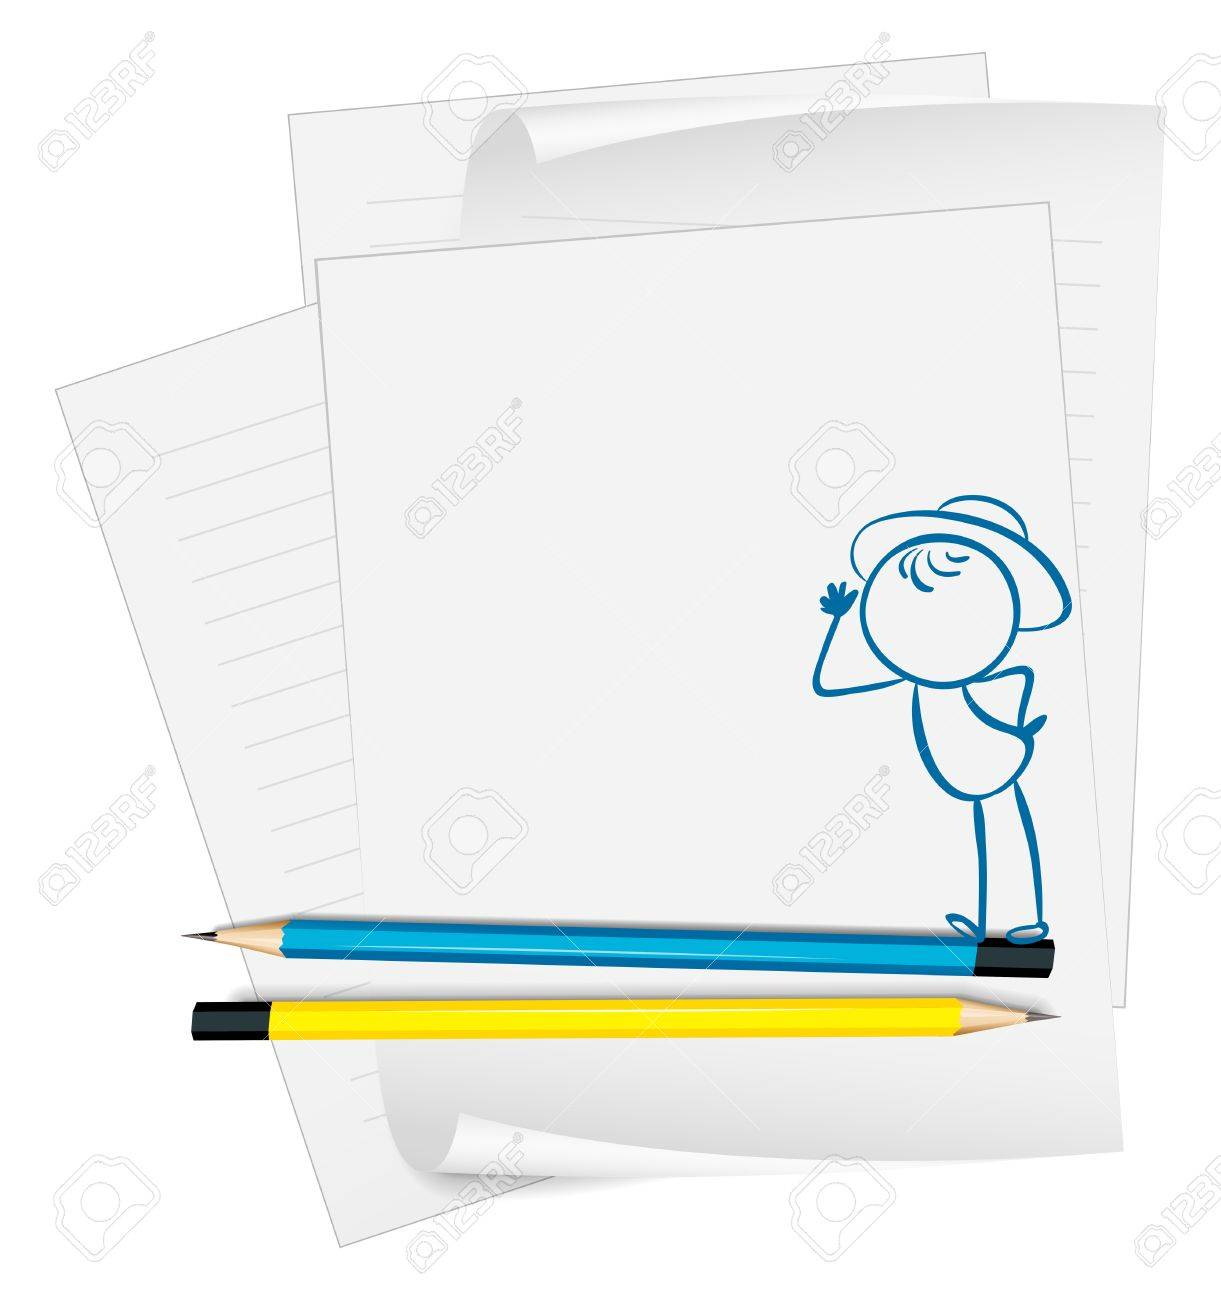 Illustration of a paper with a drawing of a boy wearing a hat on a white background Stock Vector - 18859563